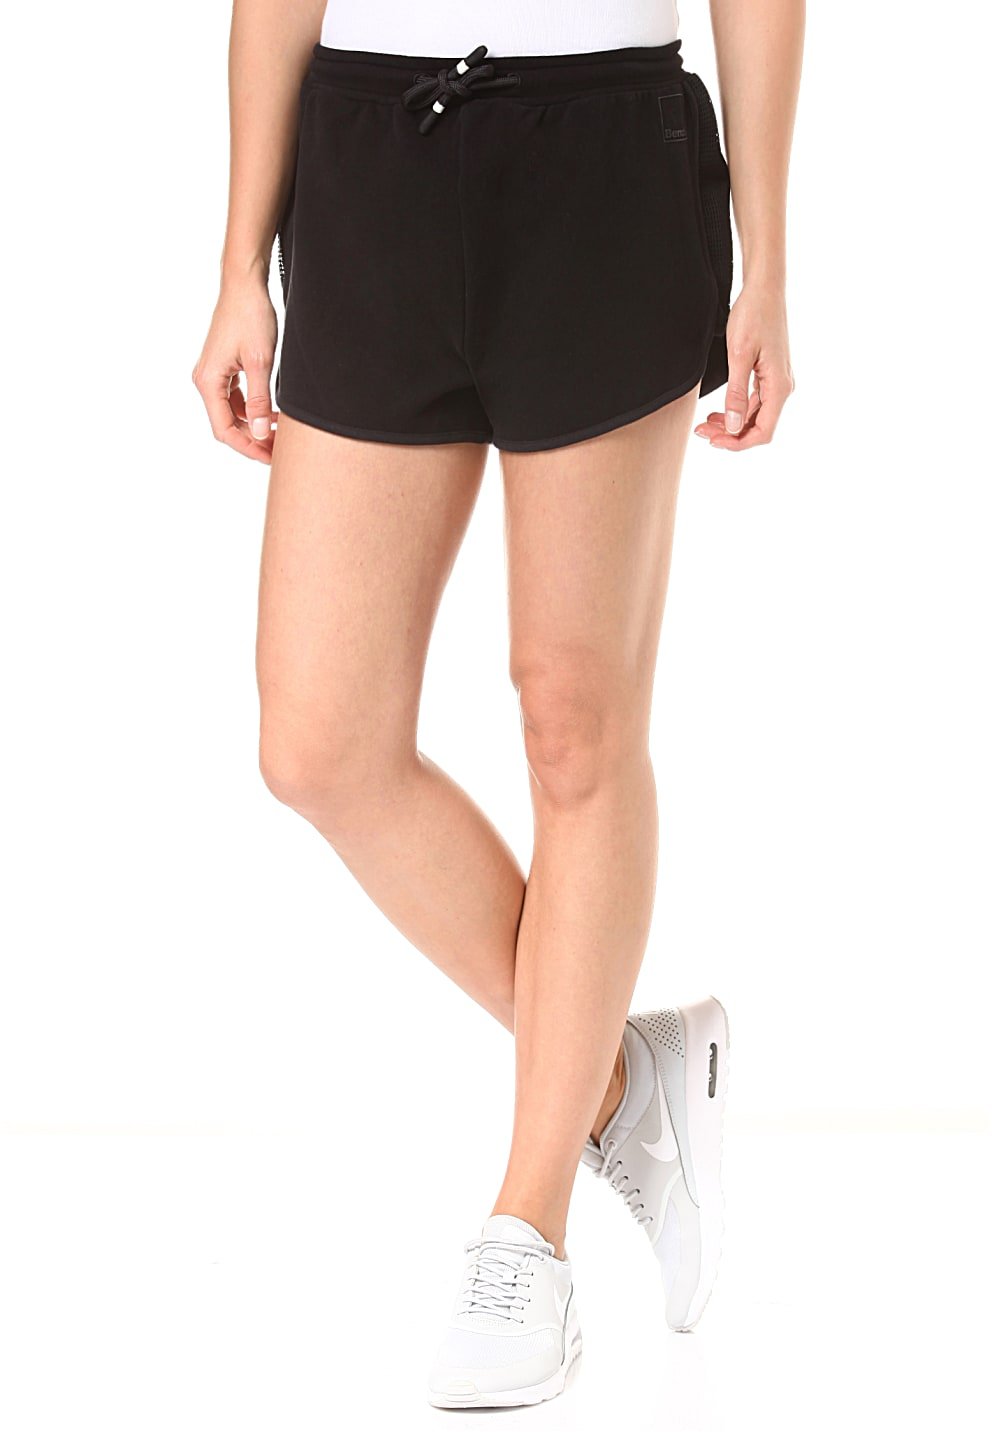 Hosen - Bench. Sweat Pants Mesh Insert Shorts für Damen Schwarz  - Onlineshop Planet Sports